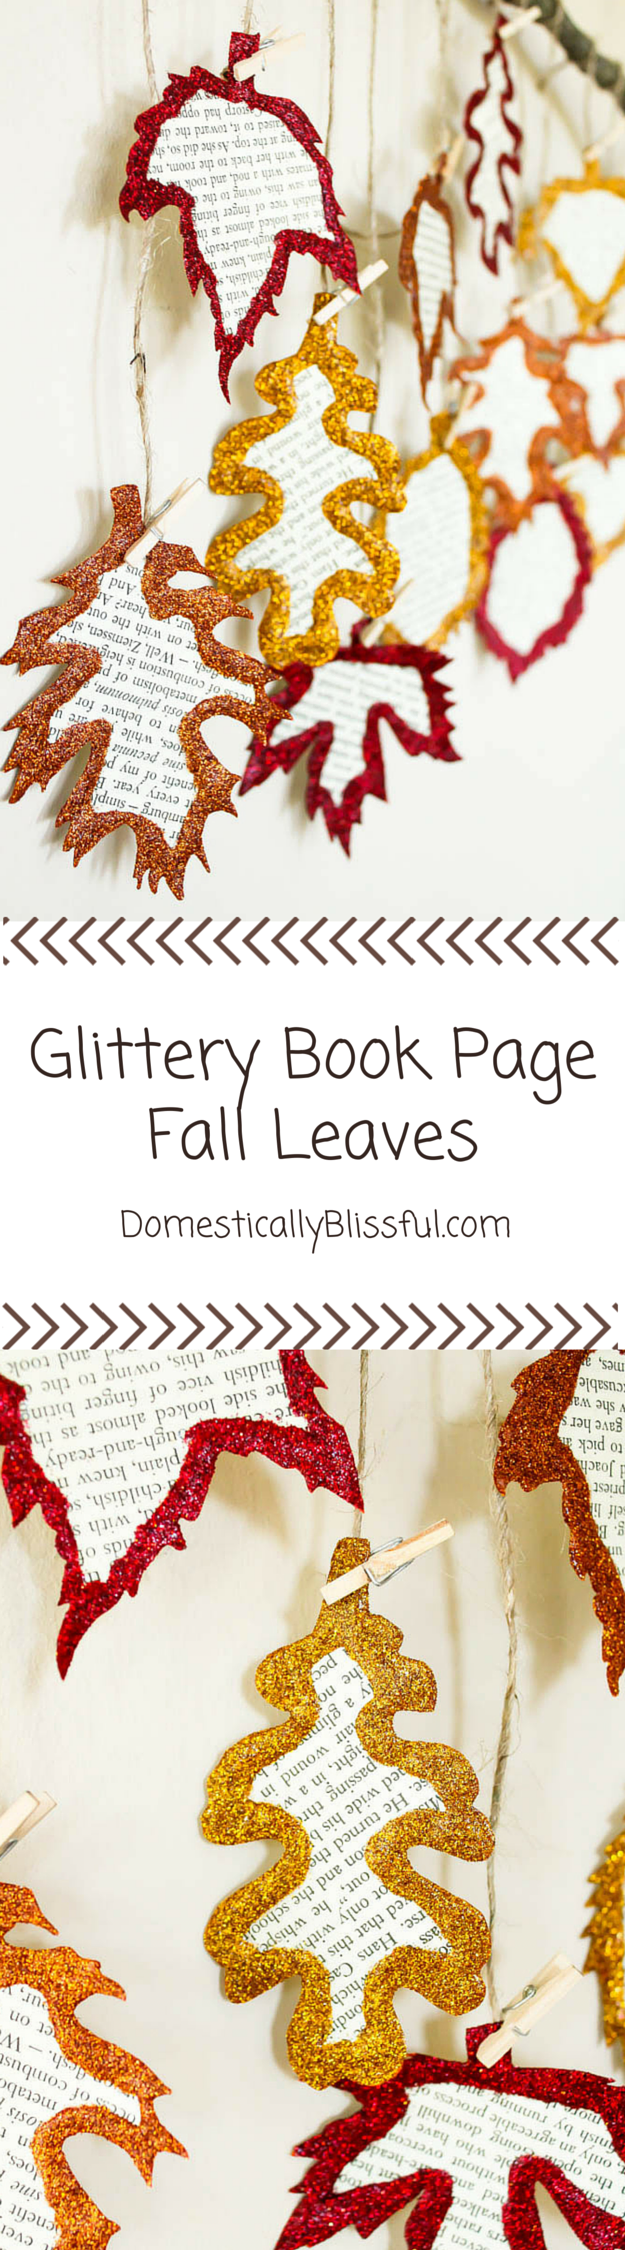 Glittery Book Page Fall Leaves by Domestically Blissful